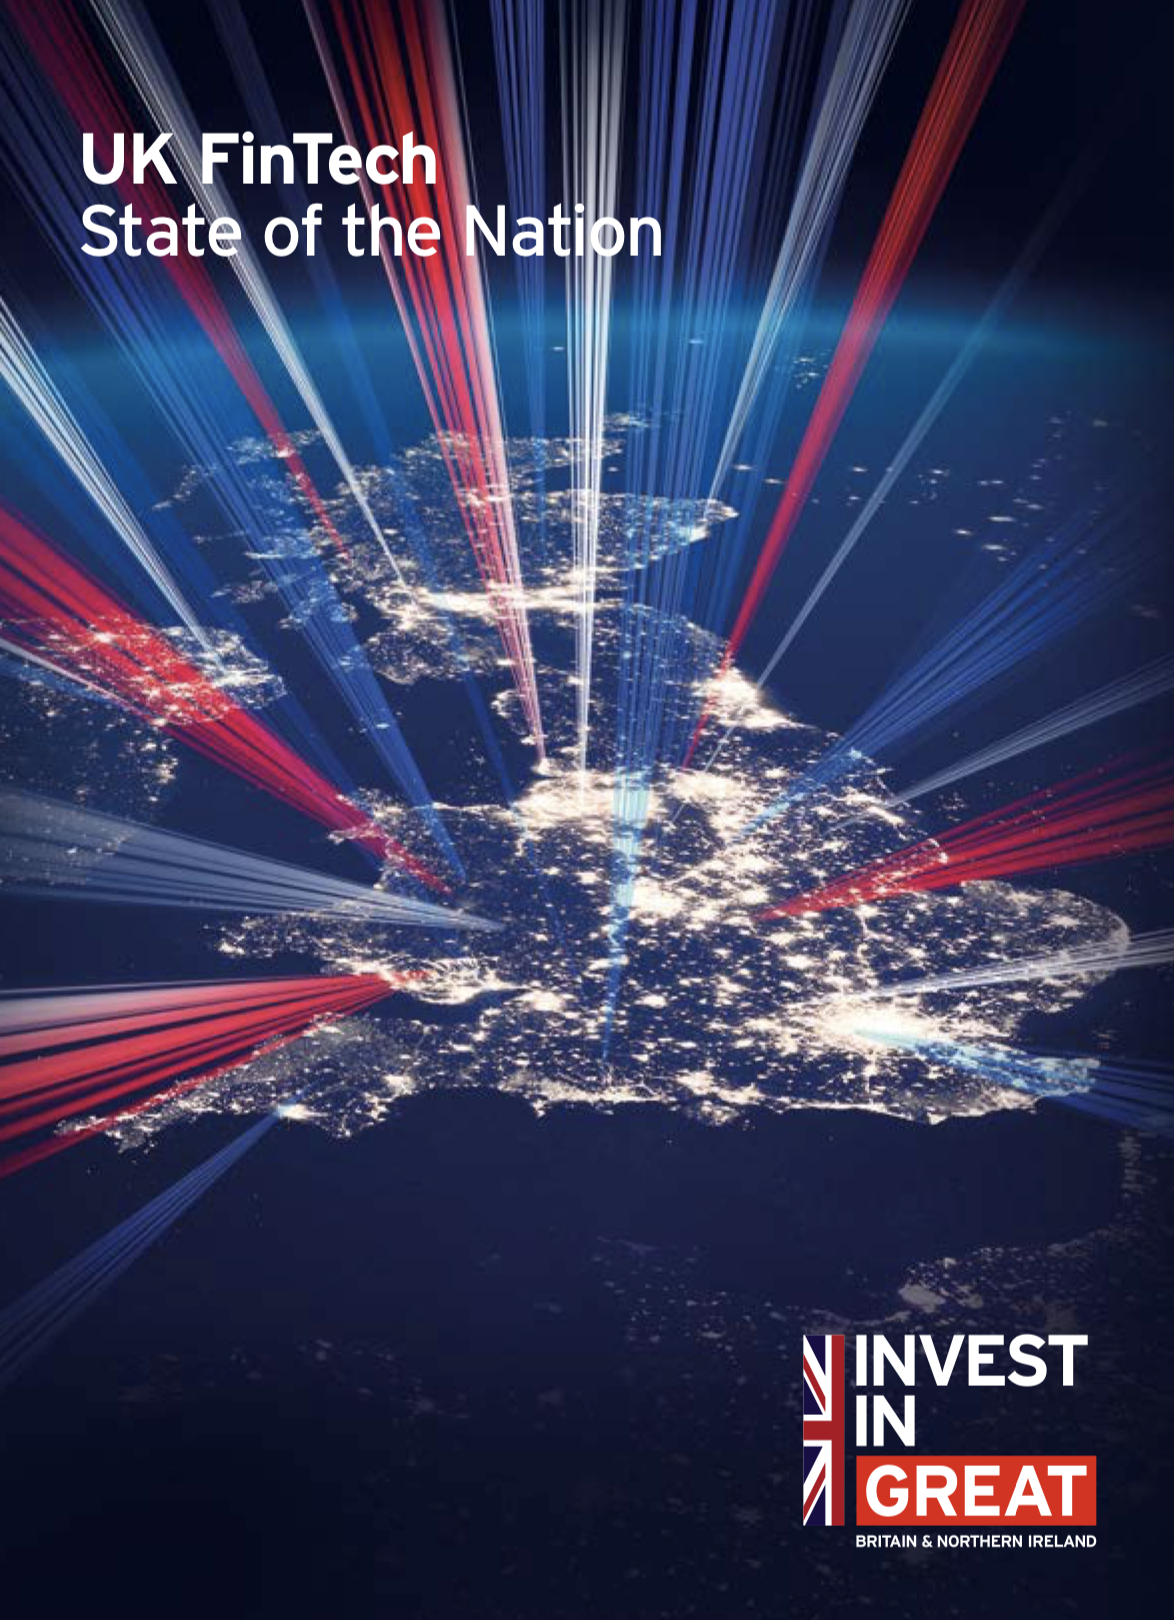 UK FinTech: State of the Nation